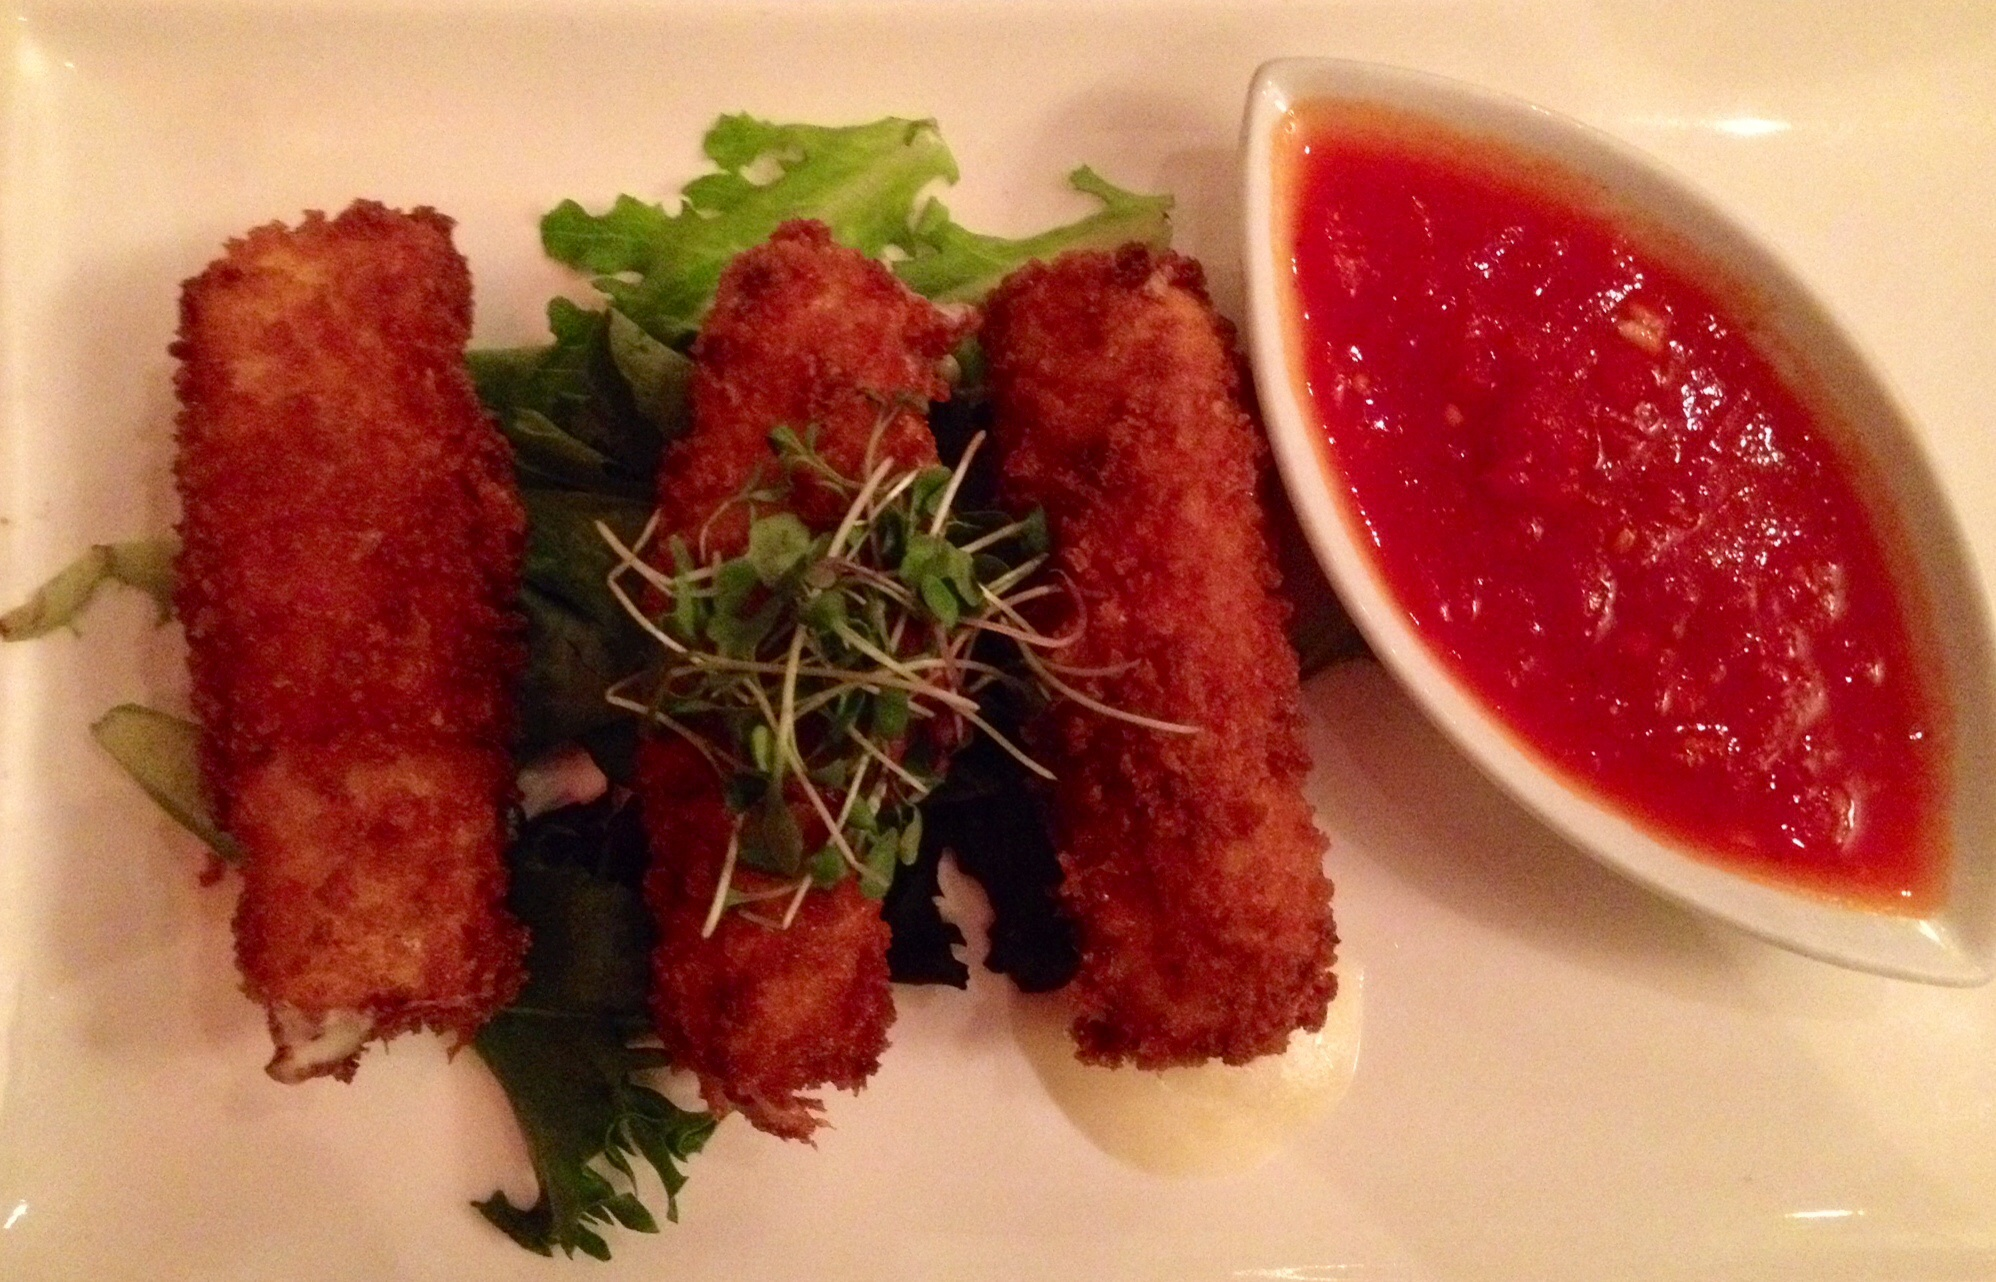 Loving XO - Bacon Stuffed Mozzarella Sticks